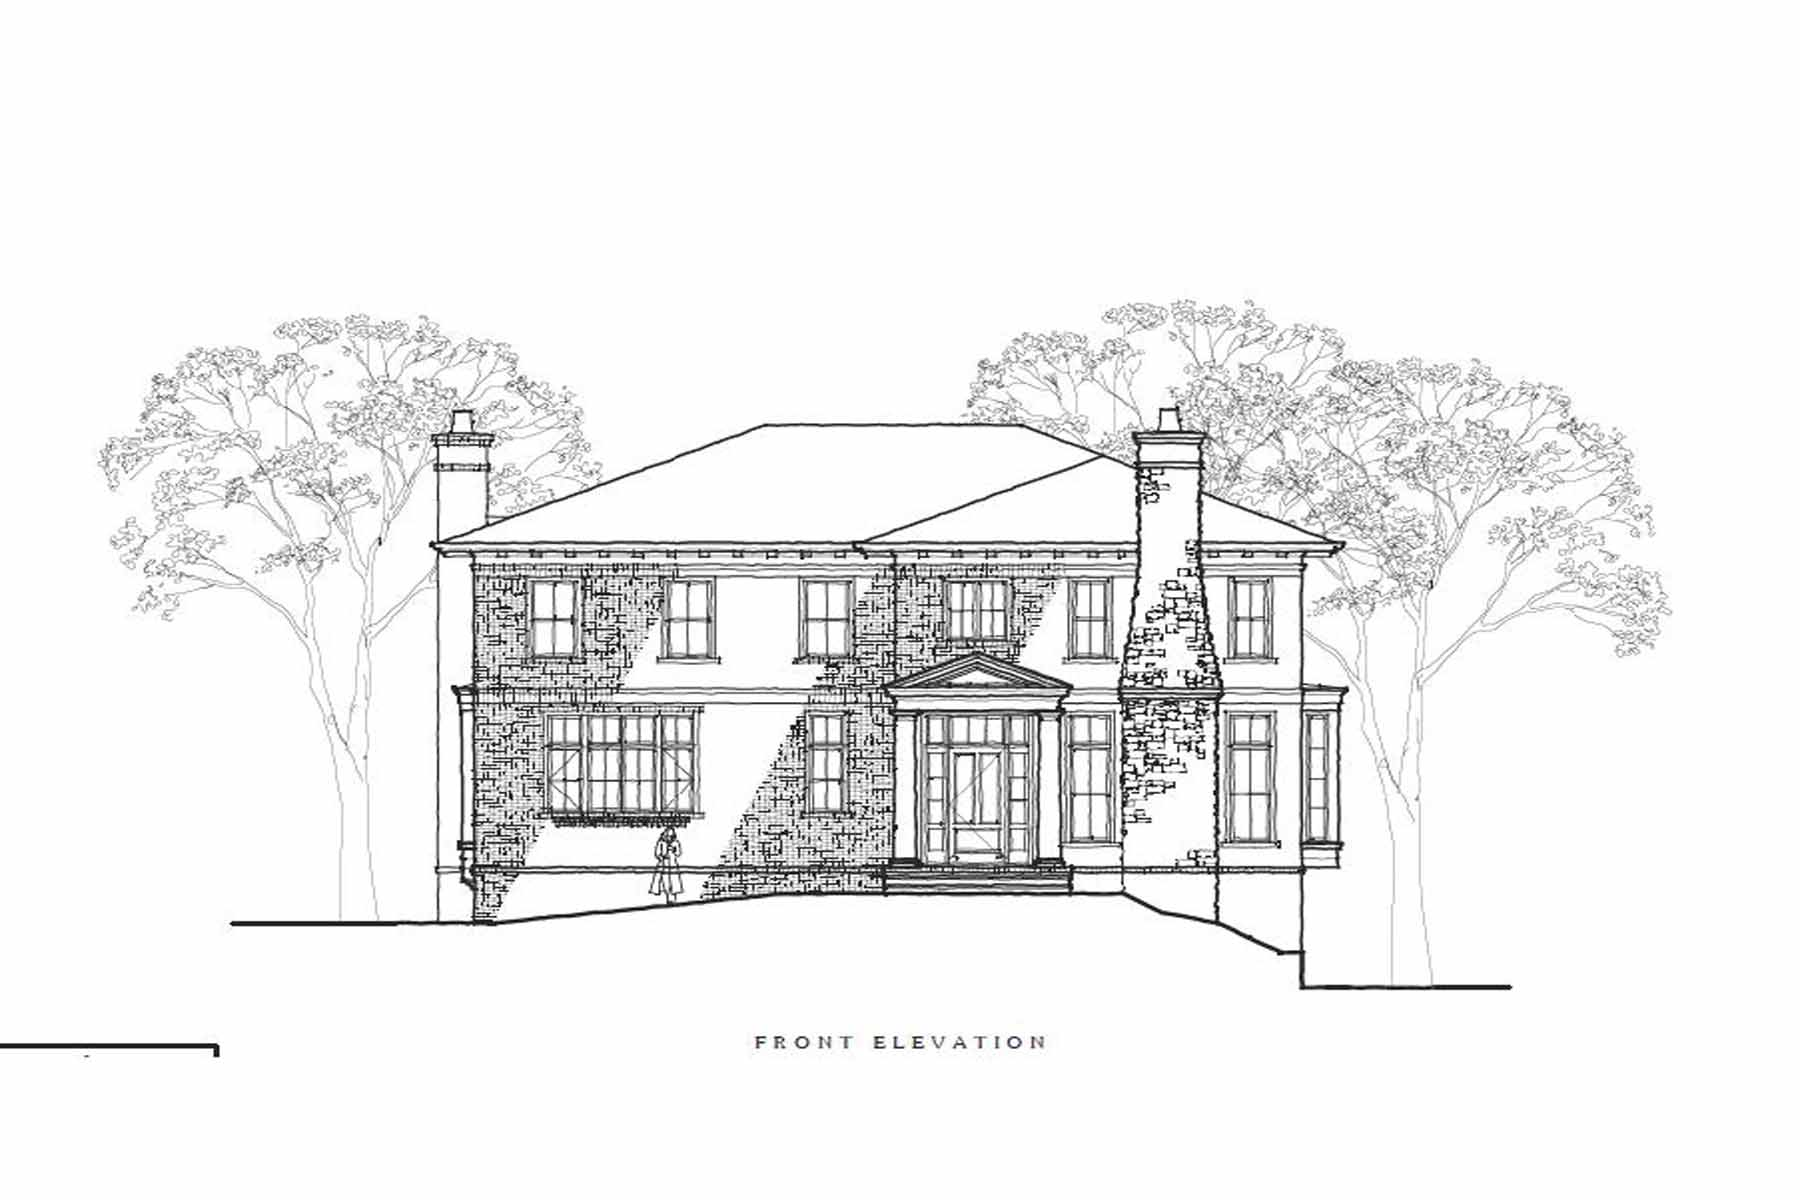 Single Family Home for Sale at New Construction in Ansley Park 109 17th St Atlanta, Georgia 30309 United States